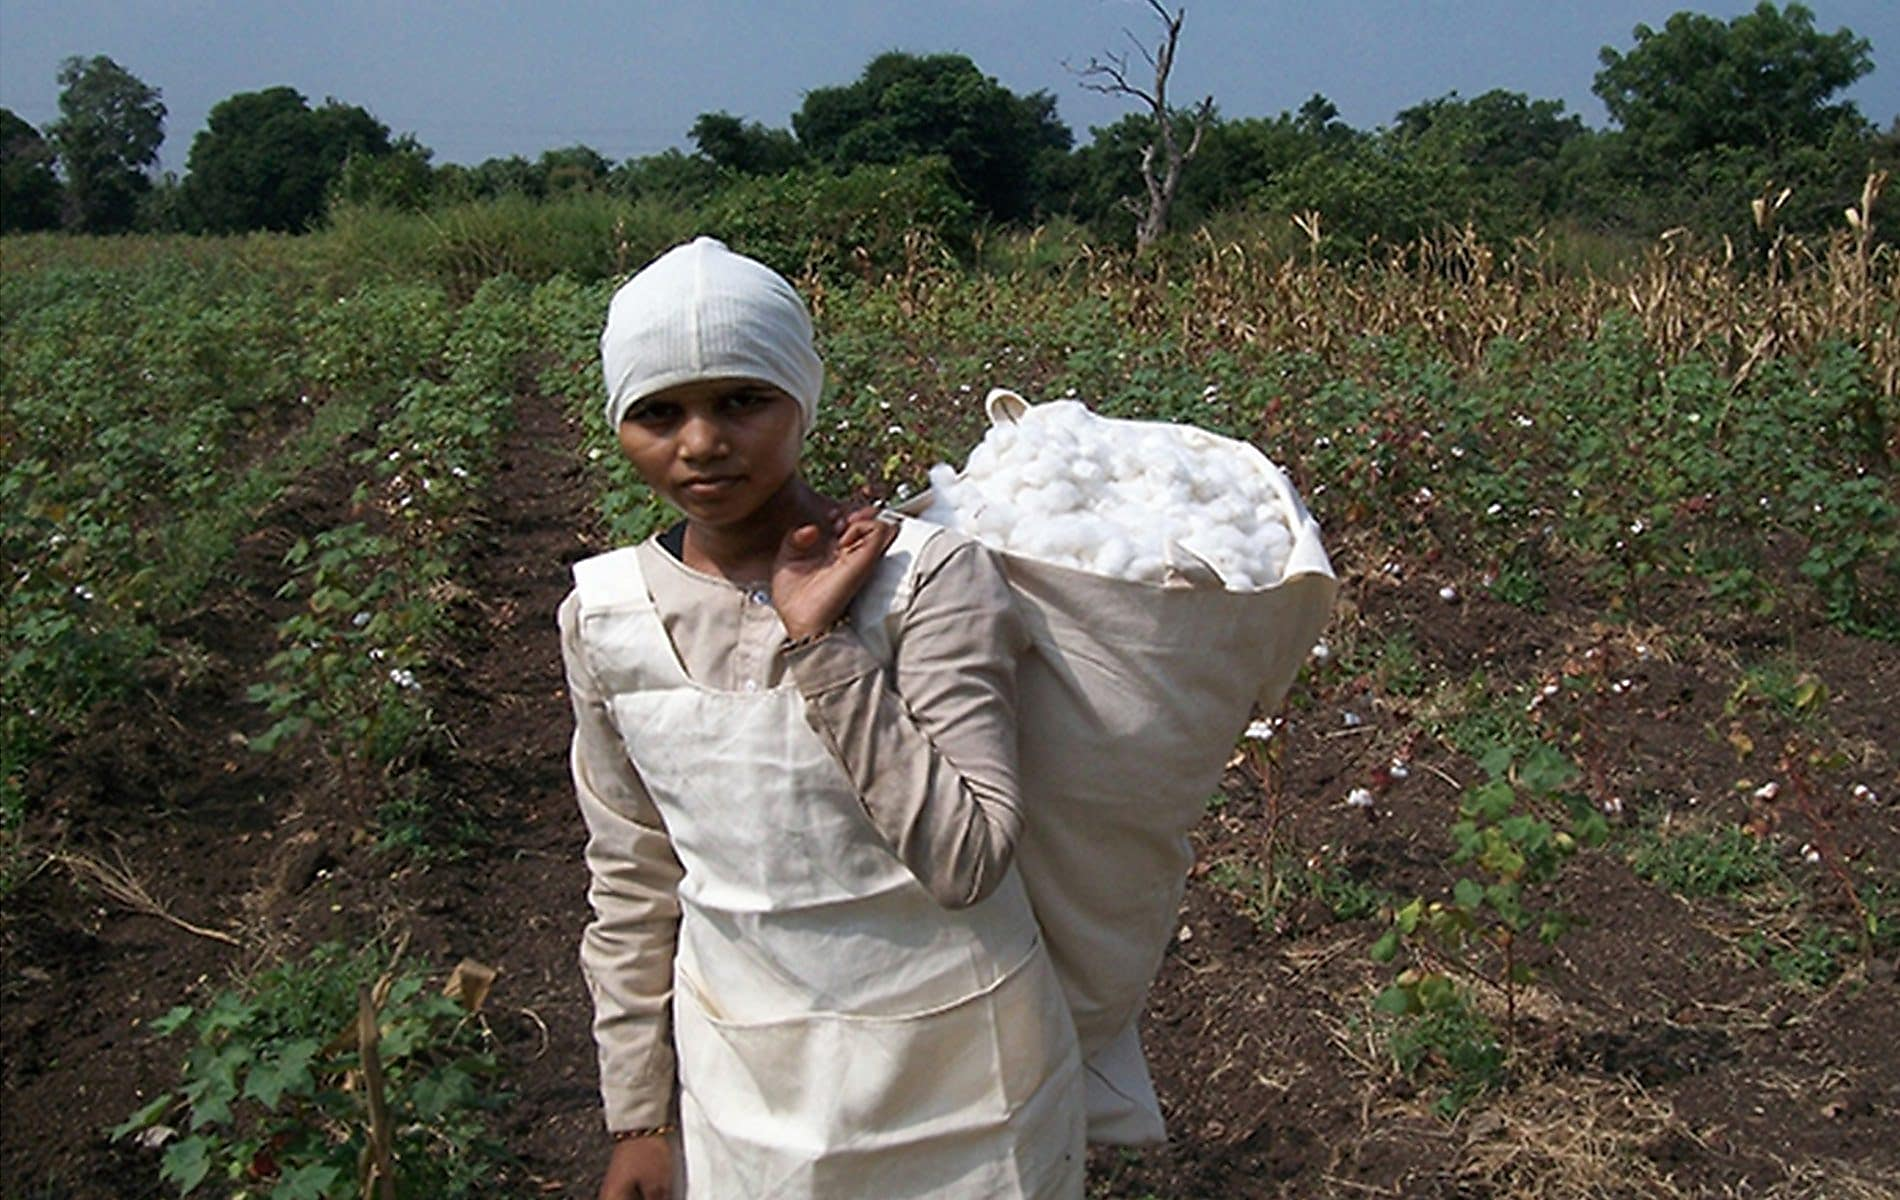 Woman carrying bale of cotton over her shoulder